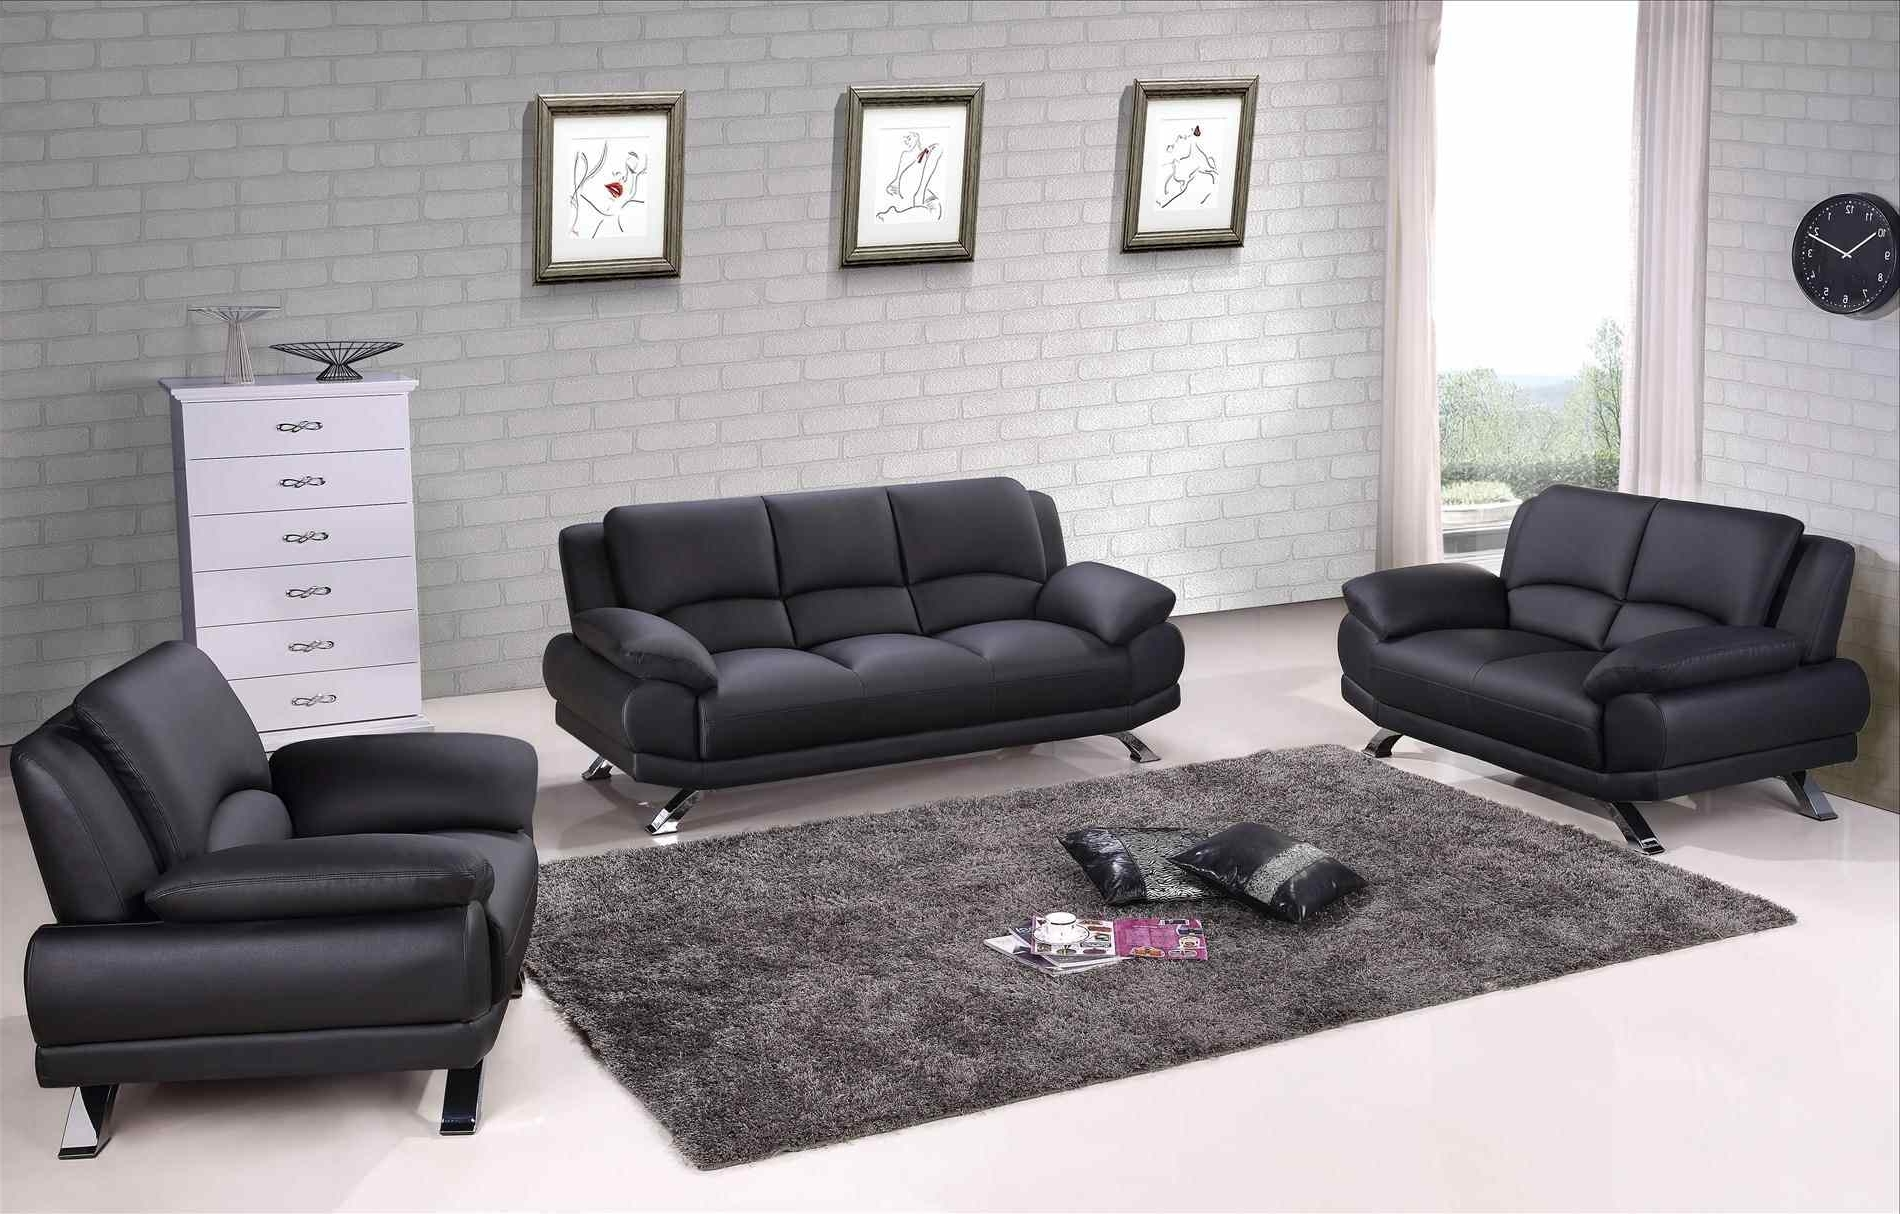 Nj Sectional Sofas Intended For Well Known Couch : Genuine Leather Couches Kramfors Lshape Sectional Youtube (View 4 of 15)